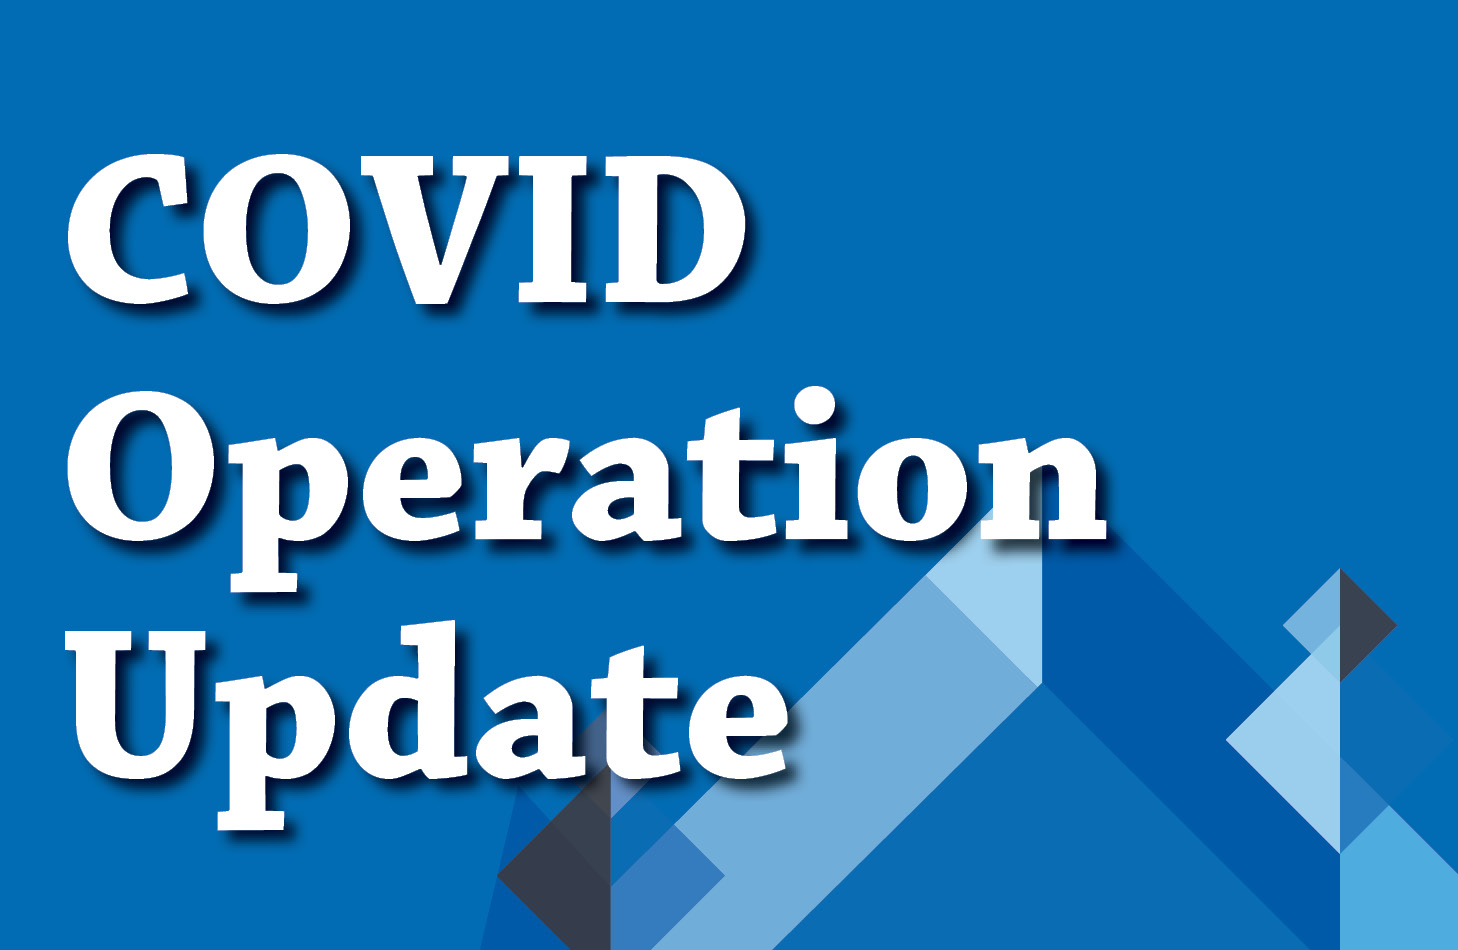 2020-2021 Covid operations update